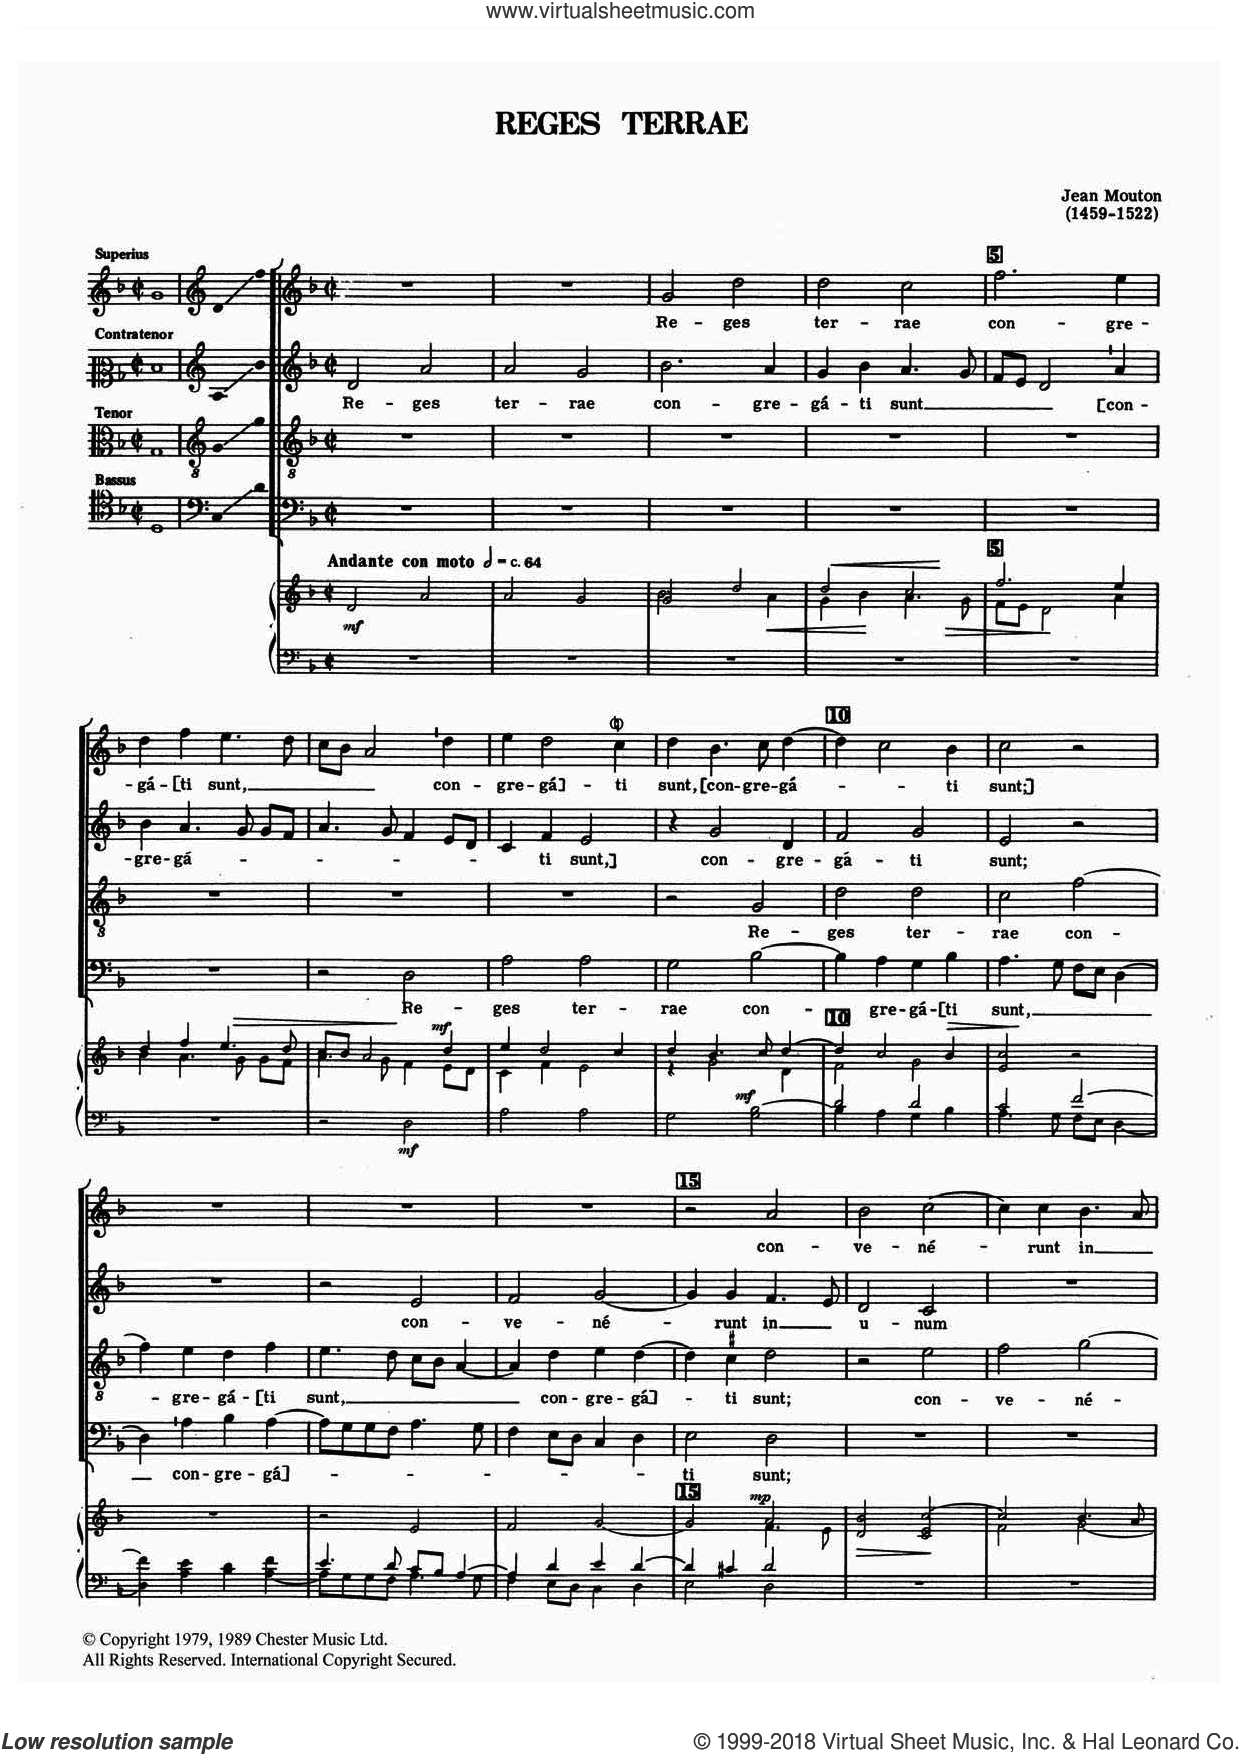 Reges Terrae sheet music for choir by Jean Mouton, classical score, intermediate. Score Image Preview.